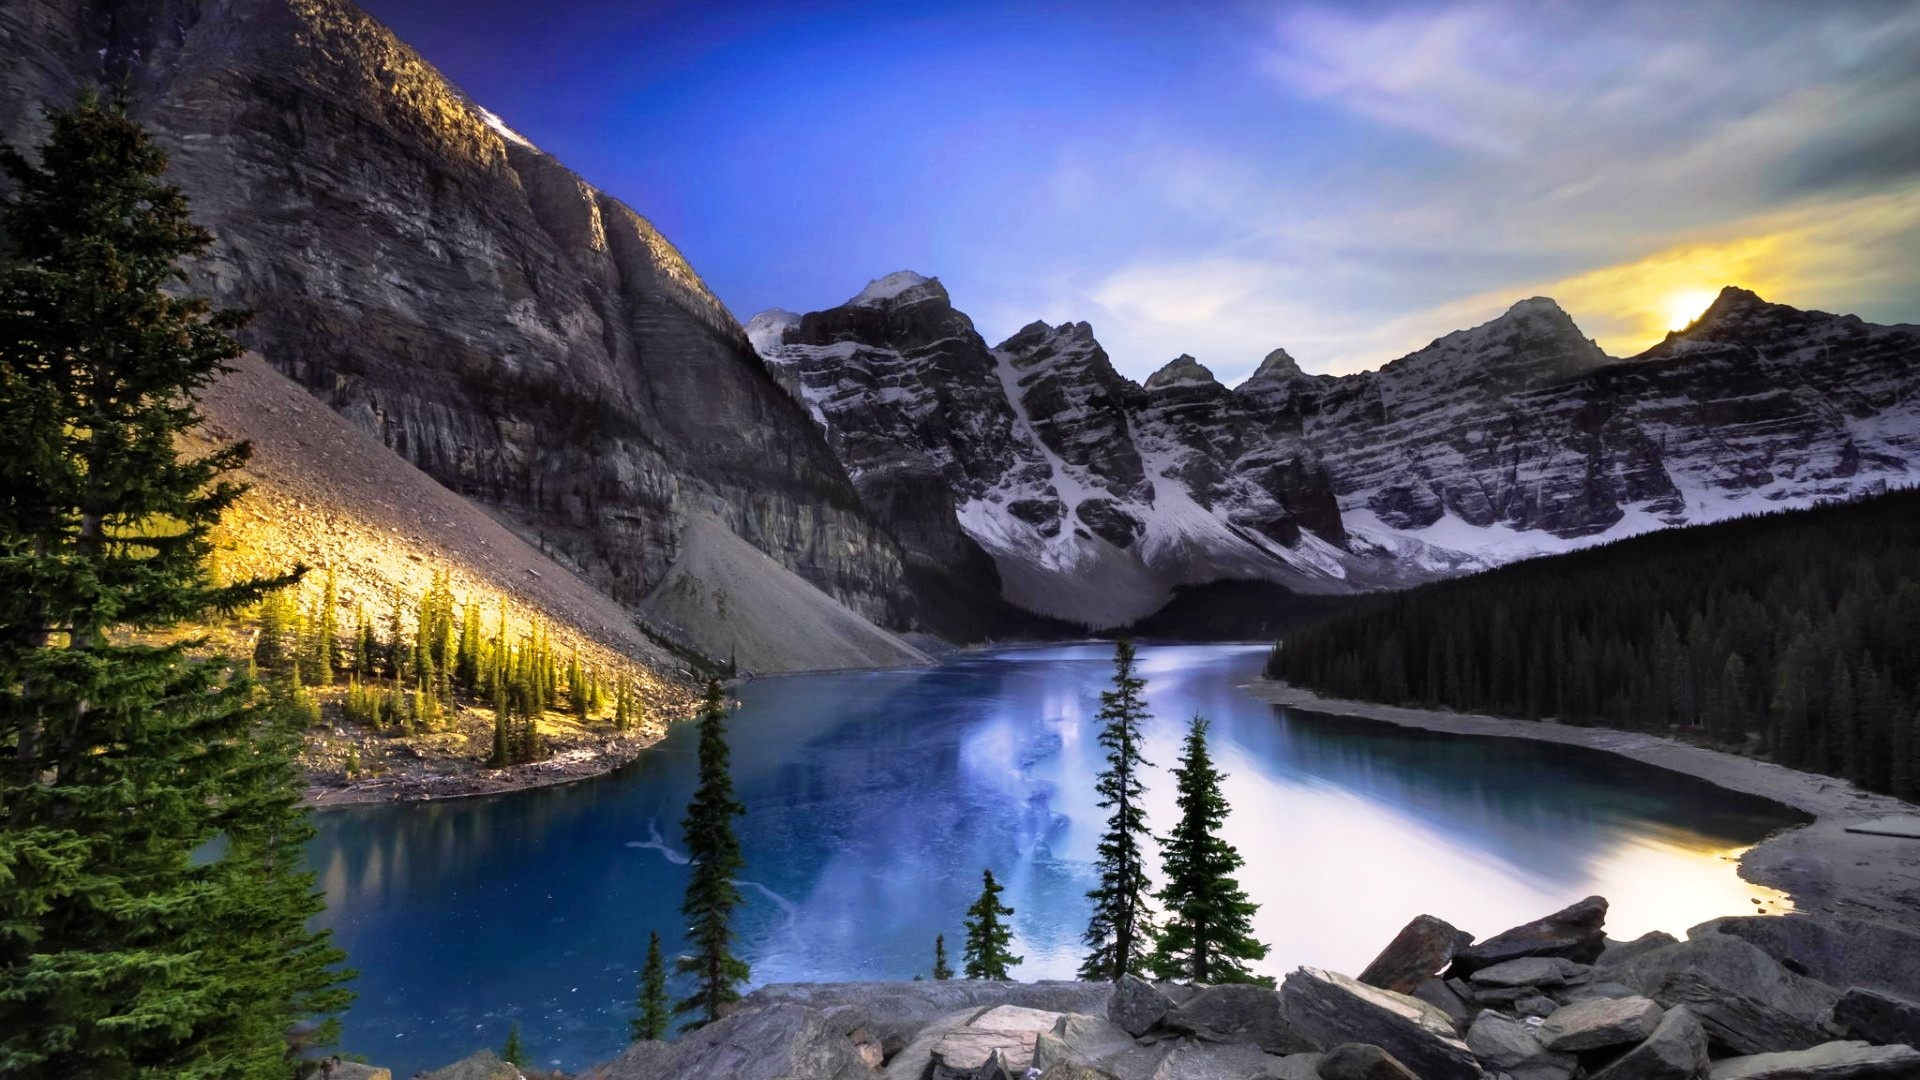 Lake Alberta Mountain And Forest Wallpapers - 1920x1080 ...